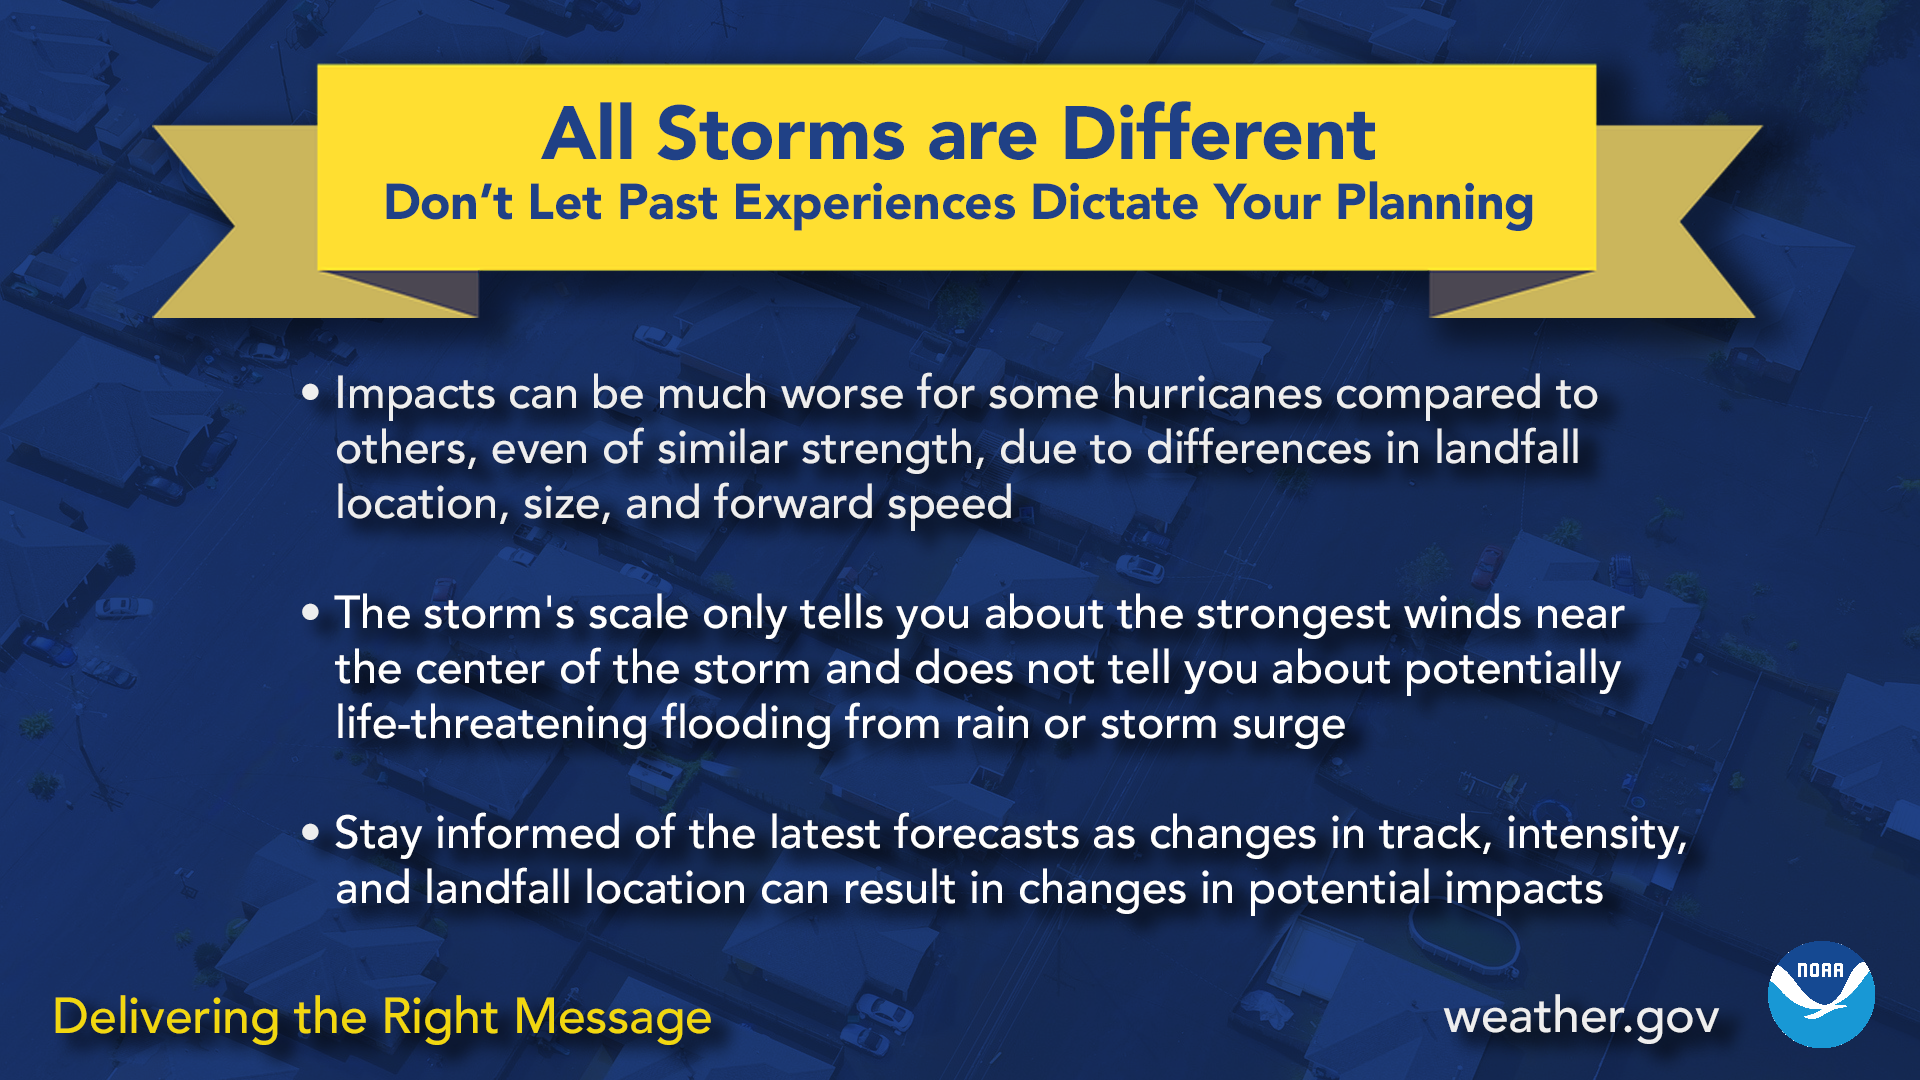 All storms are different - don't let past experiences dictate your planning. Impacts can be much worse for some hurricanes compared to others, even of similar strength, due to differences in landfall location, size, and forward speed. The storm's scale only tells you about the strongest winds near the center of the storm and does not tell you about potentially life-threatening flooding from rain or storm surge. Stay informed of the latest as changes in track, intensity, and landfall location can result in changes in potential impacts.